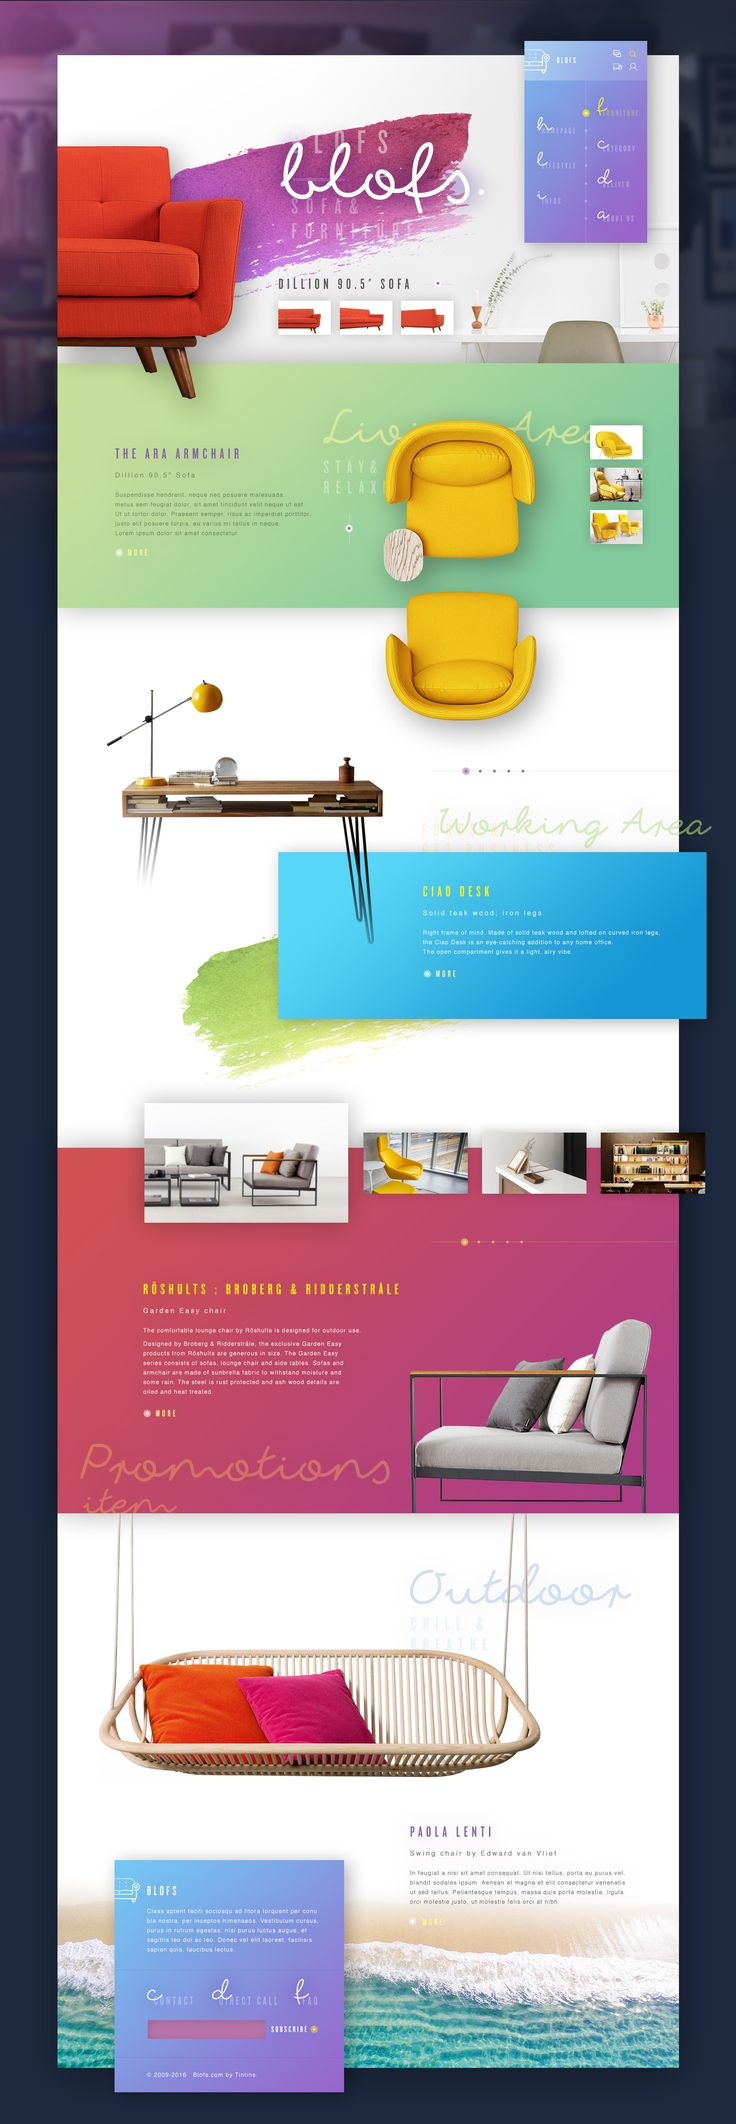 Blofs : Colorful decor by Tintins